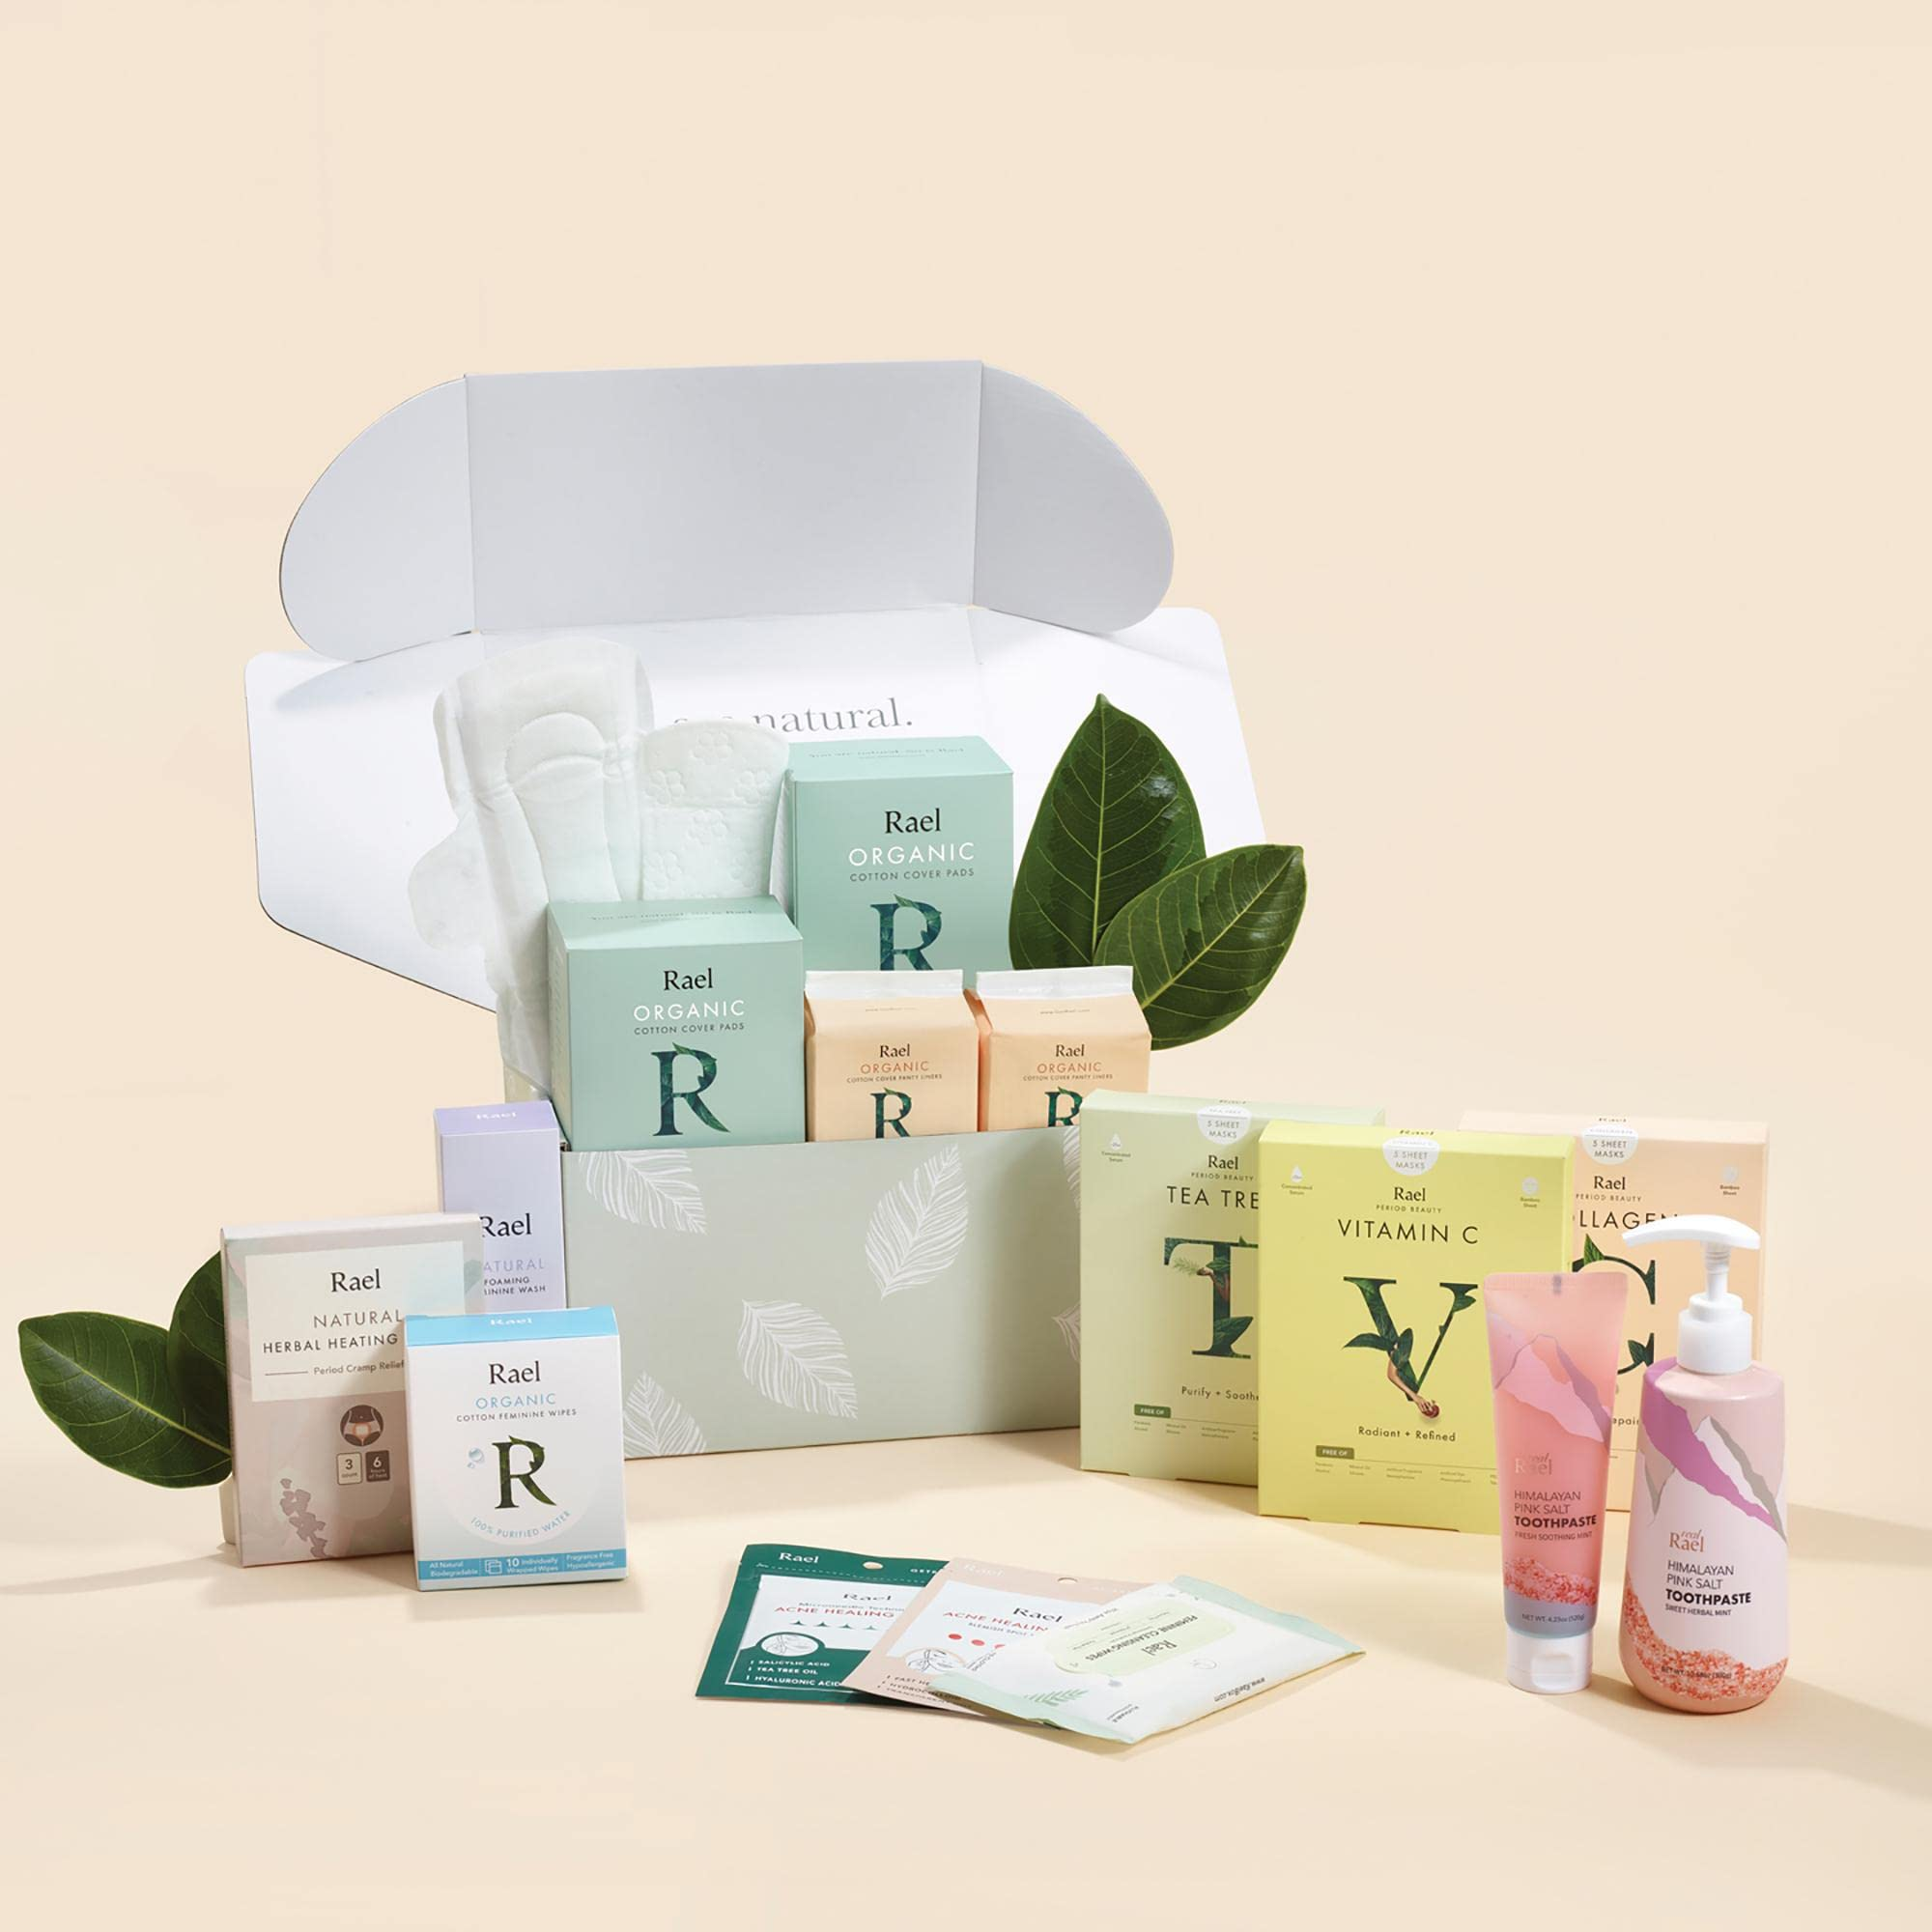 Rael subscription box with tampons, pads, supplements, toiletries, and more.